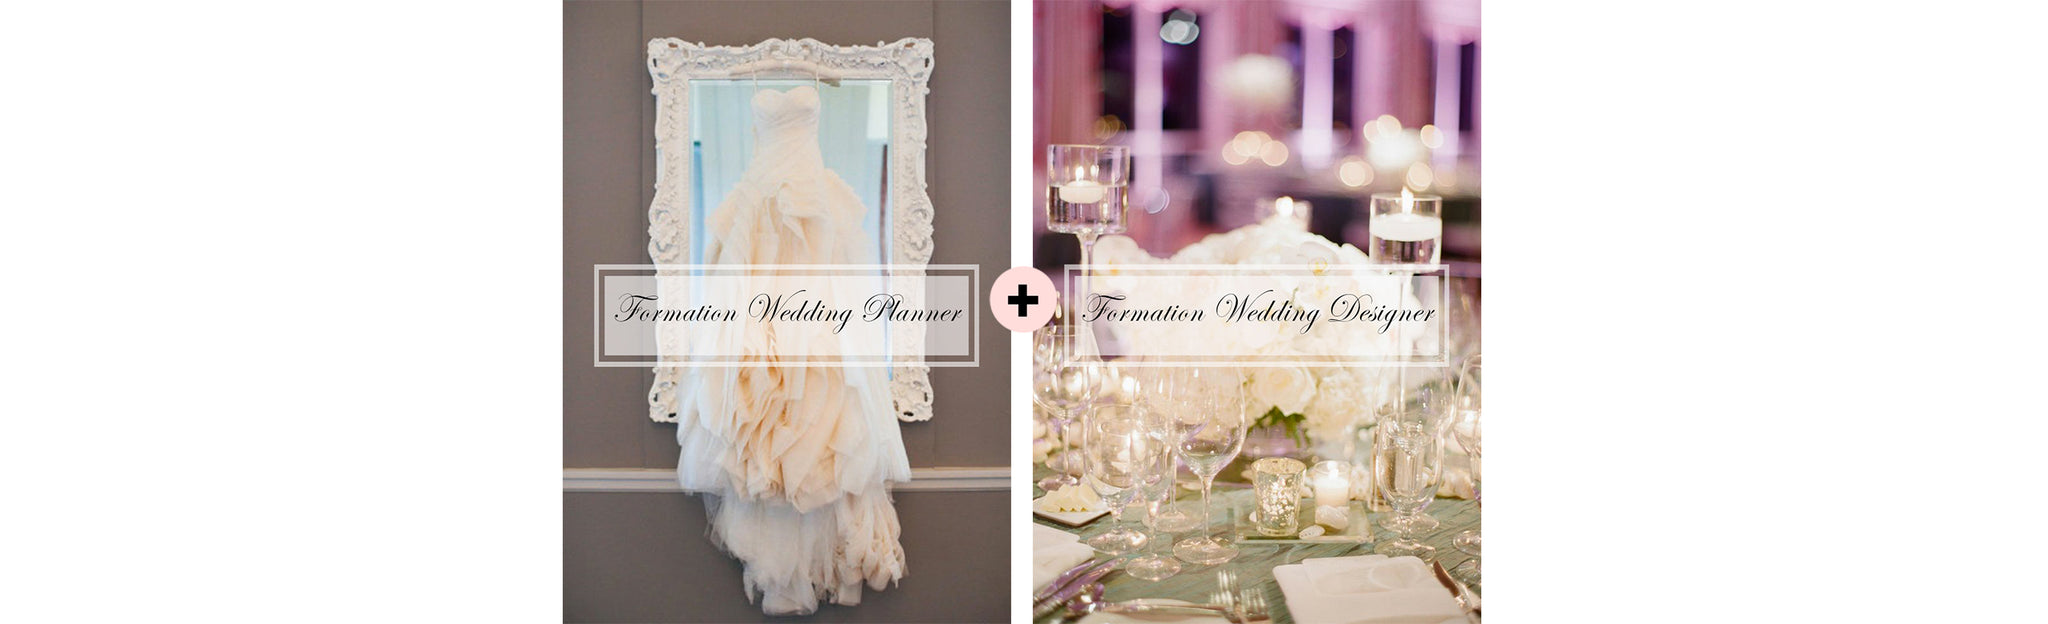 Wedding Expert + (seminaire)